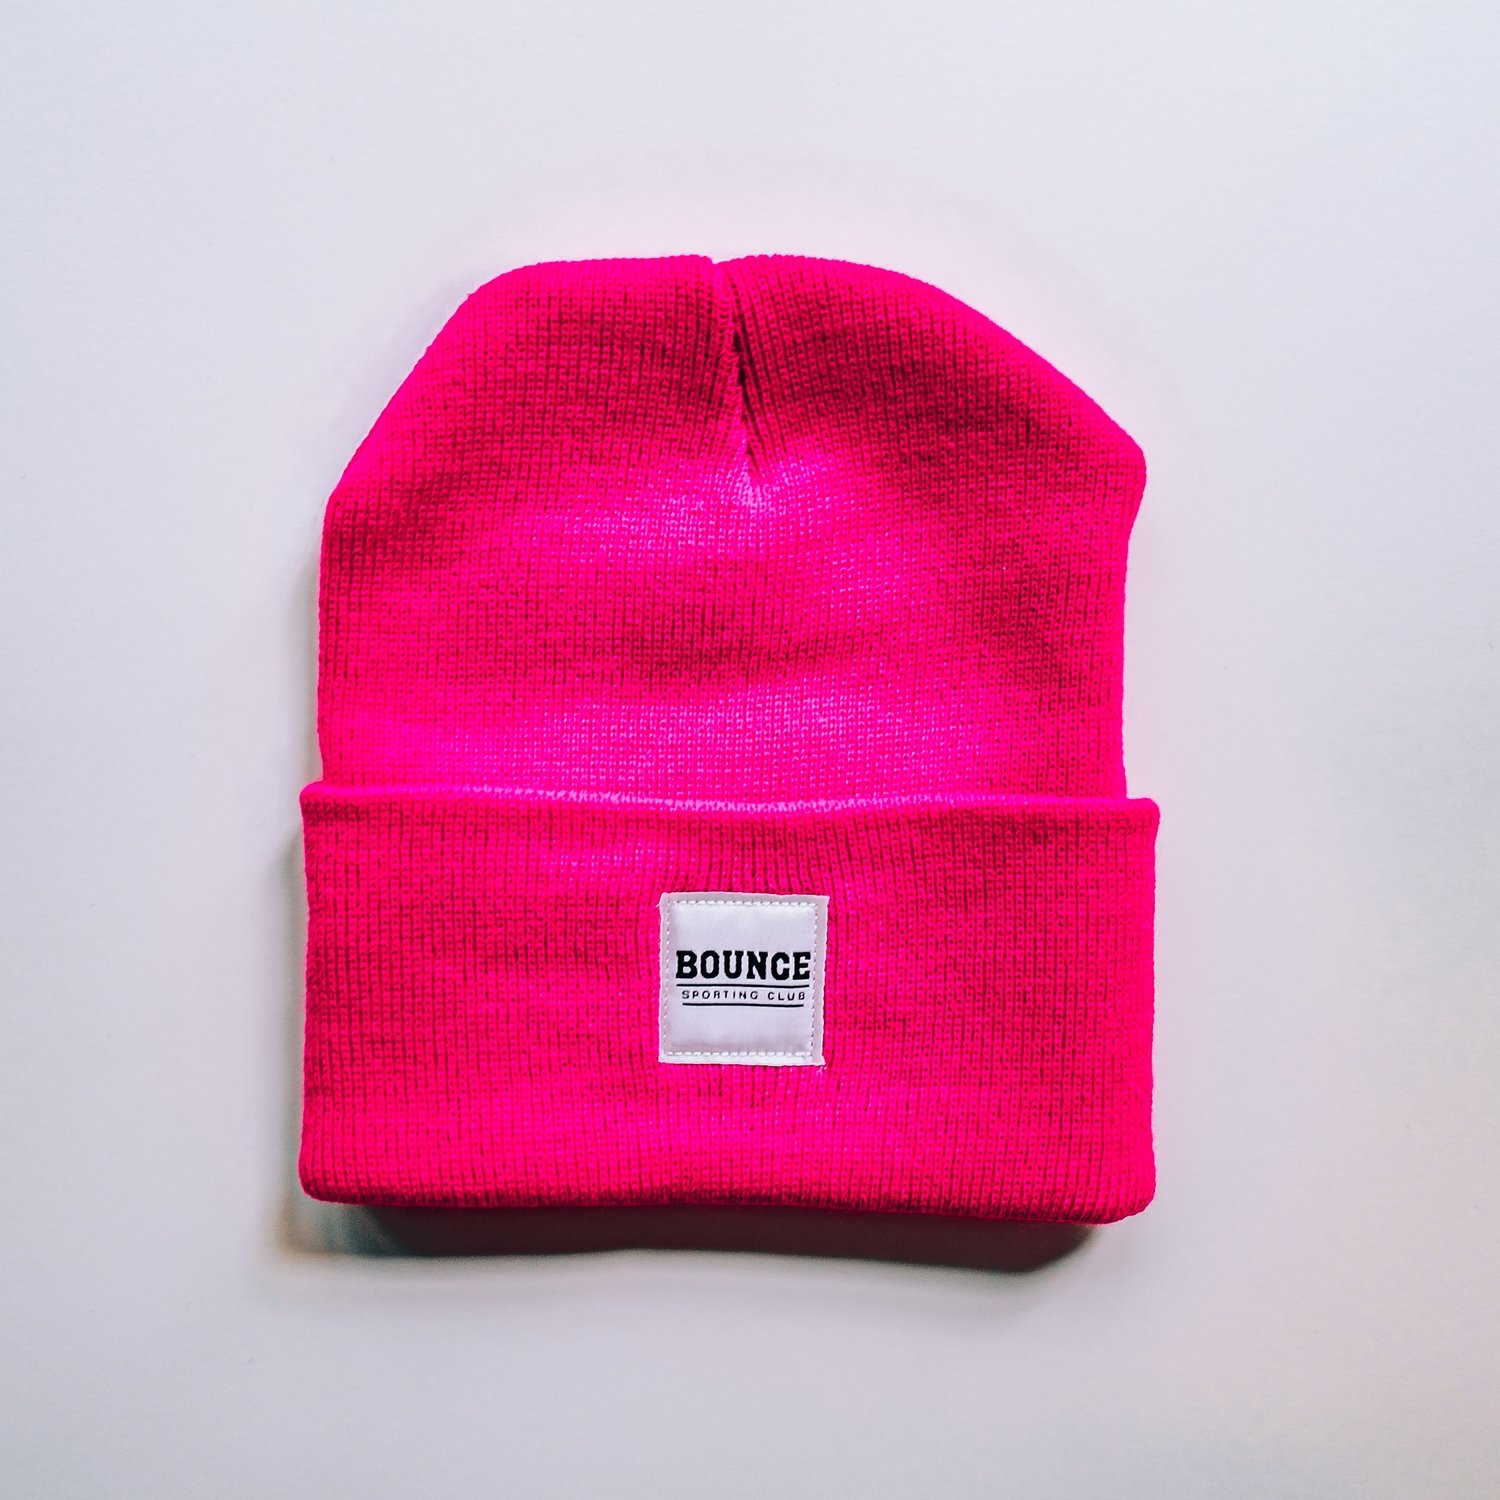 Bounce Patchwork Beanie - Neon Pink